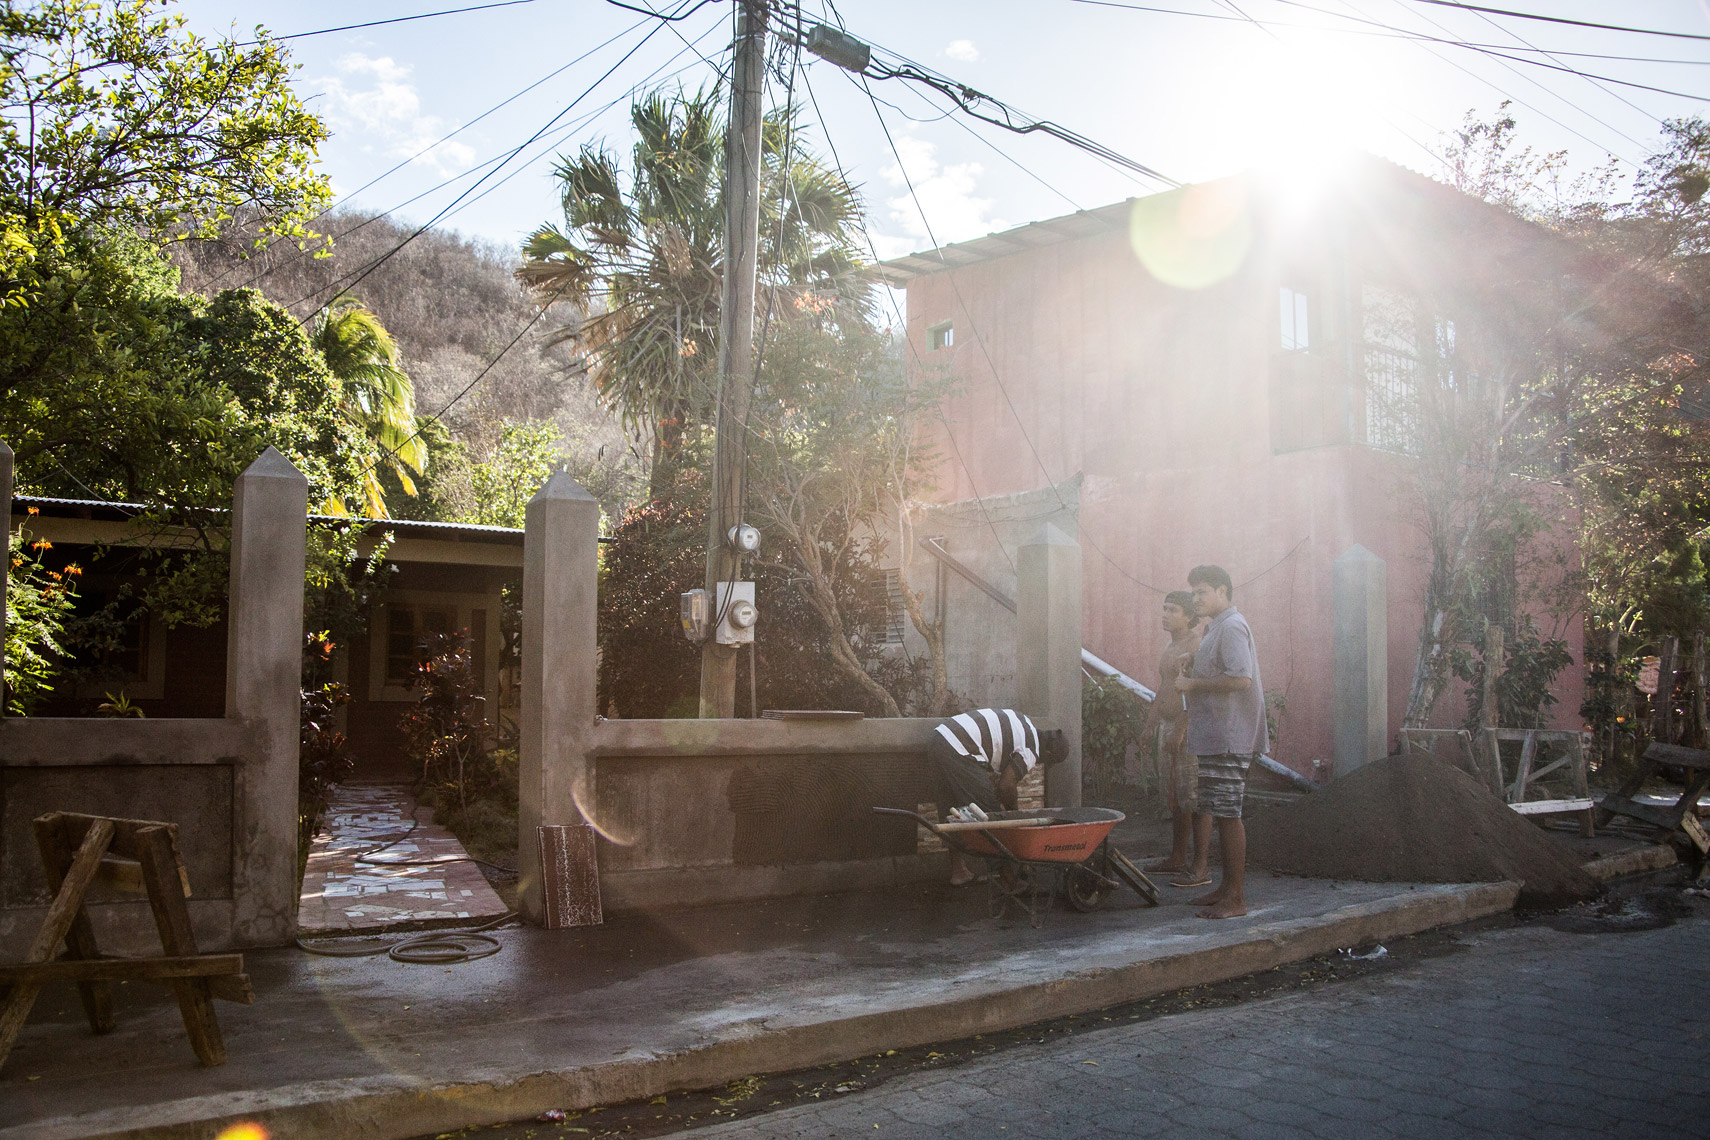 CostaRica-Street-Photography-Sun-02